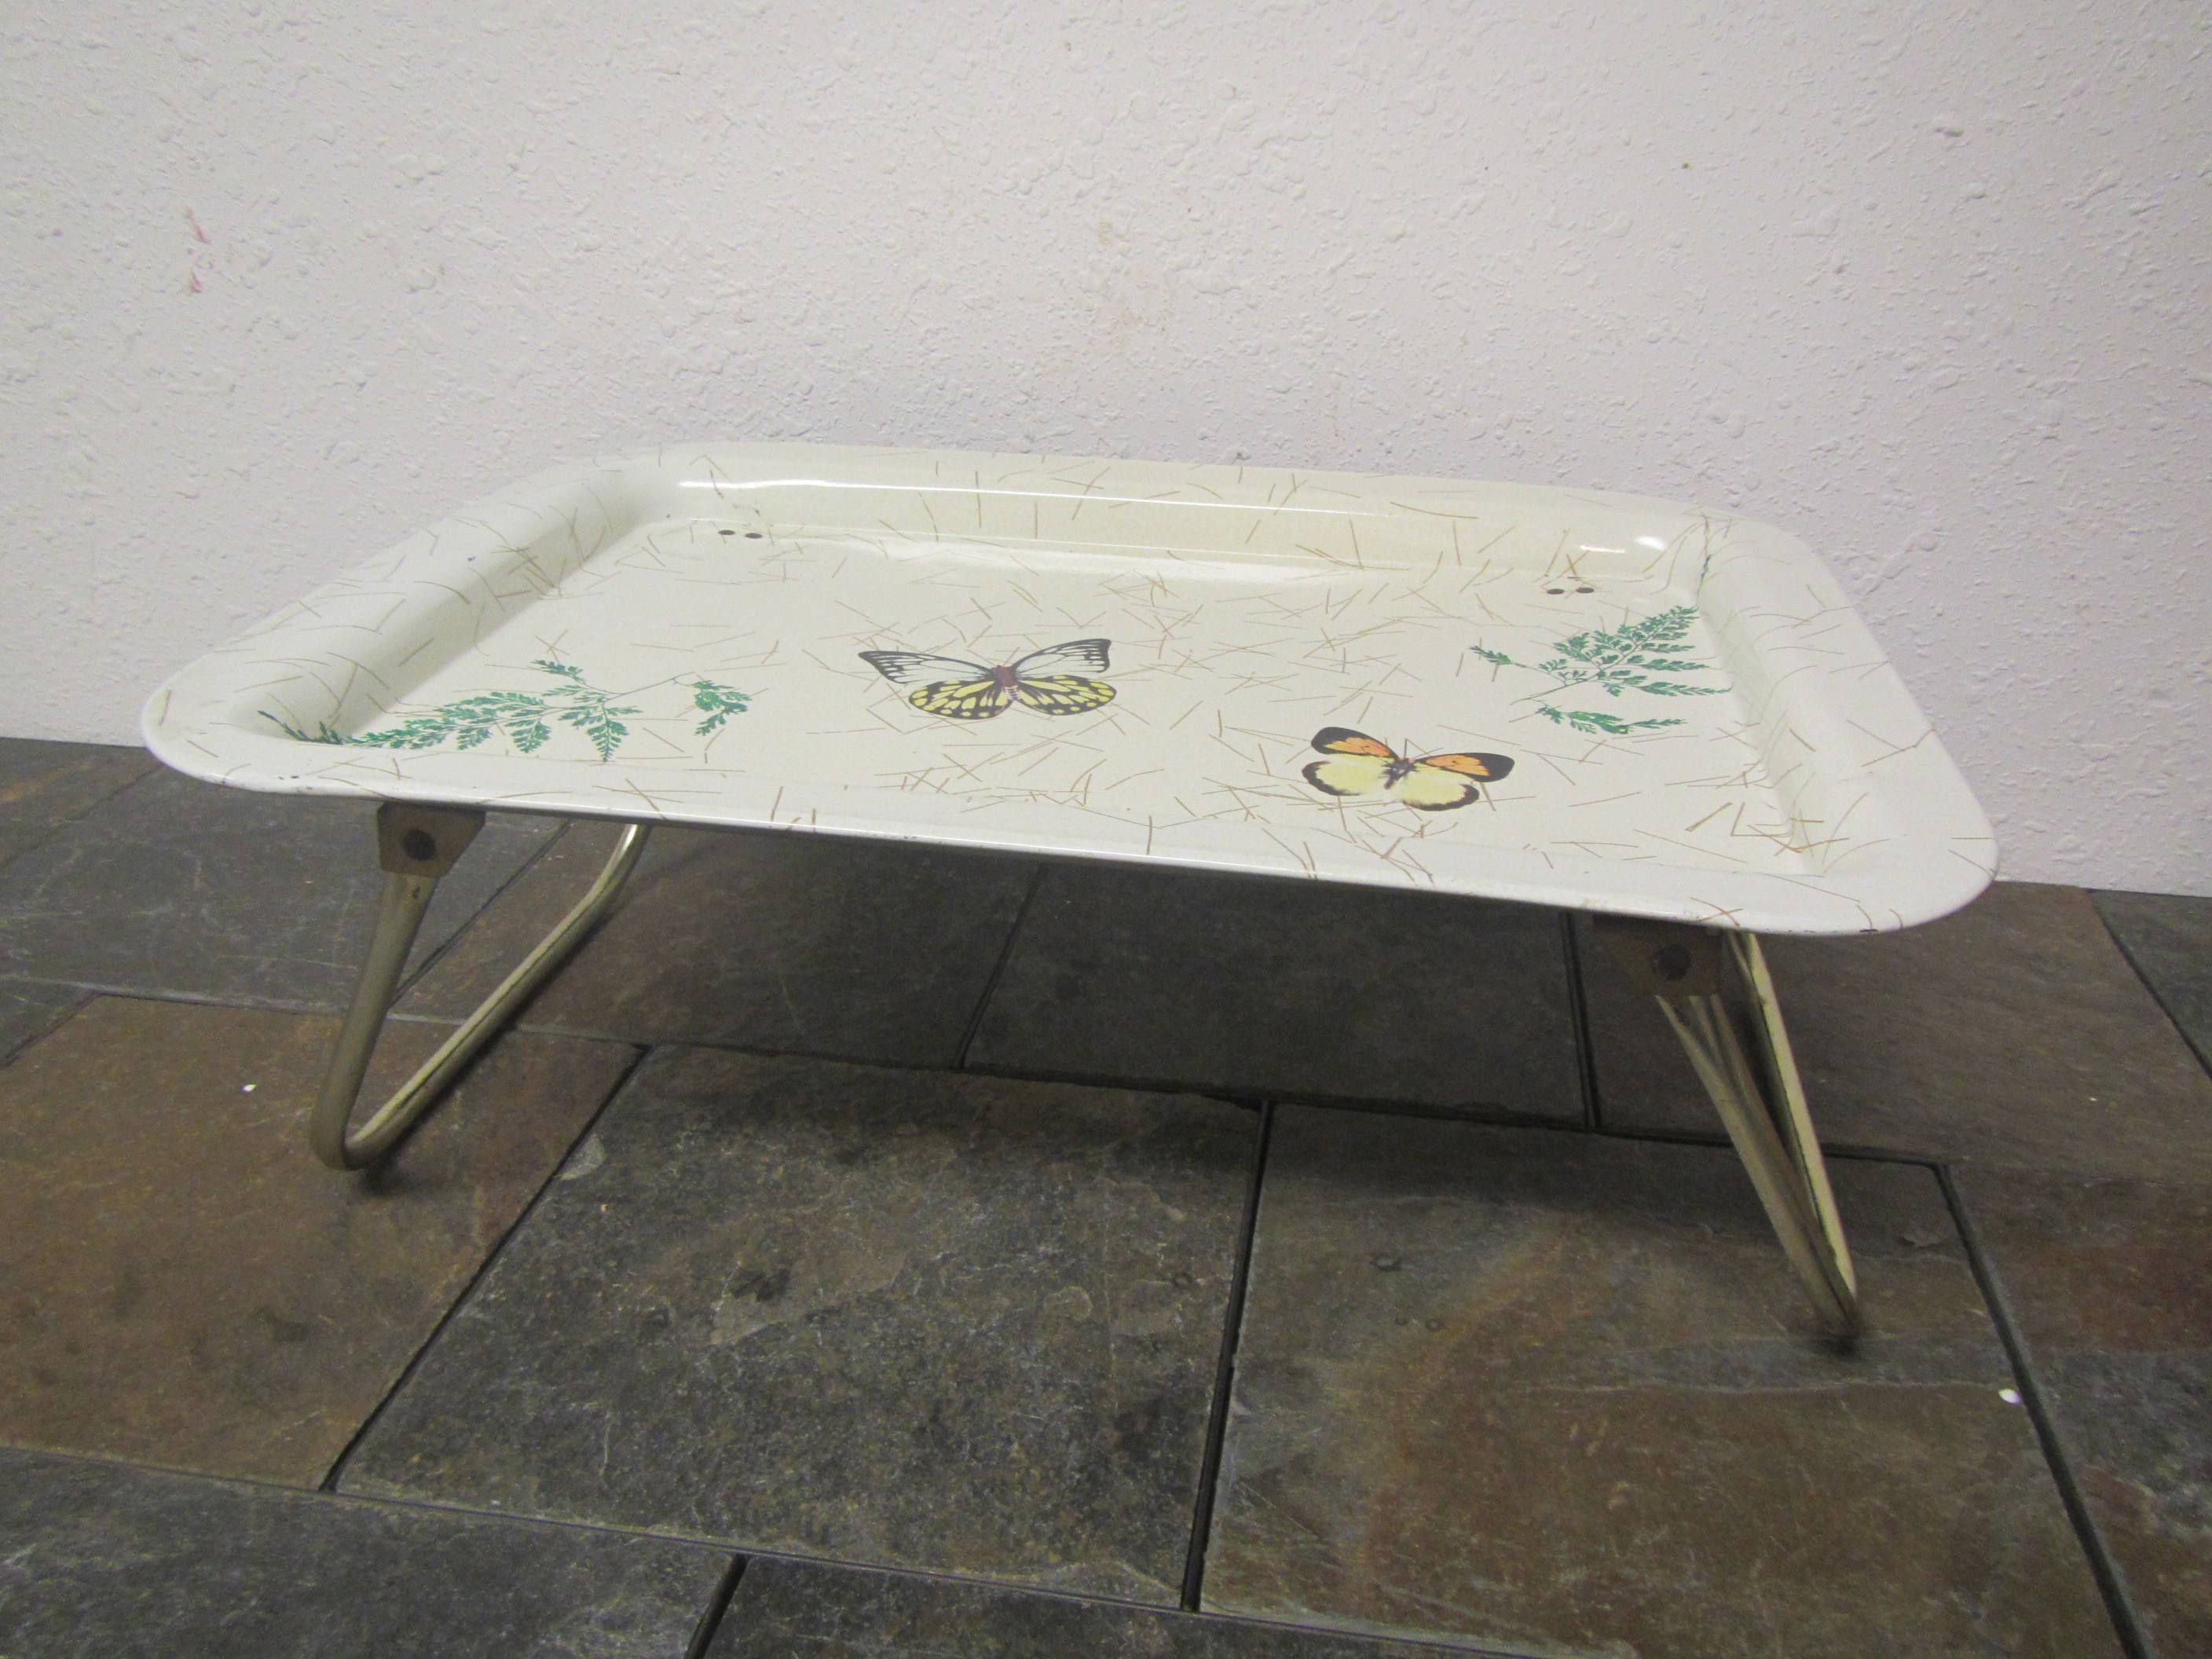 10 Off Metal Butterfly Lap Tray With Fold Up Legs Tv Tray Lap Tray Wheat Design Folded Up